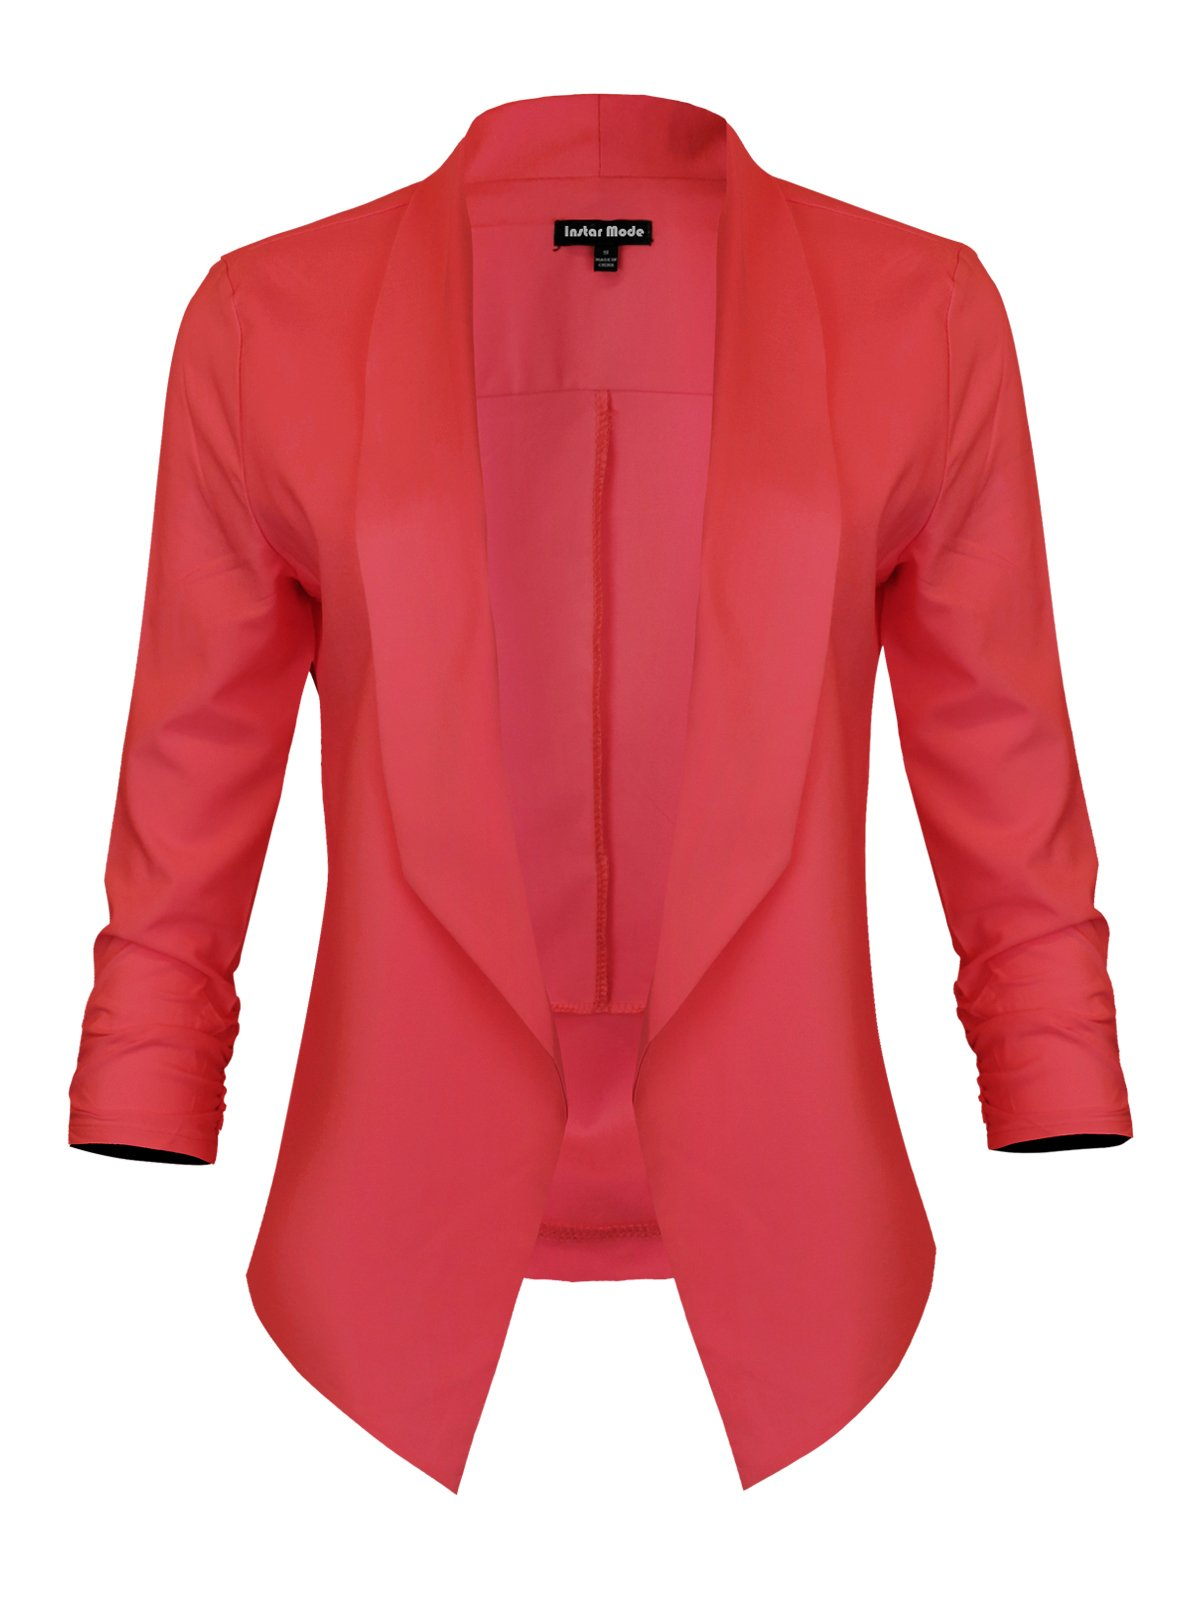 Instar Mode Women's Lightweight Fly Away Thin Chiffon Ruched Sleeve Opened Blazer (B610117 Coral, Small)